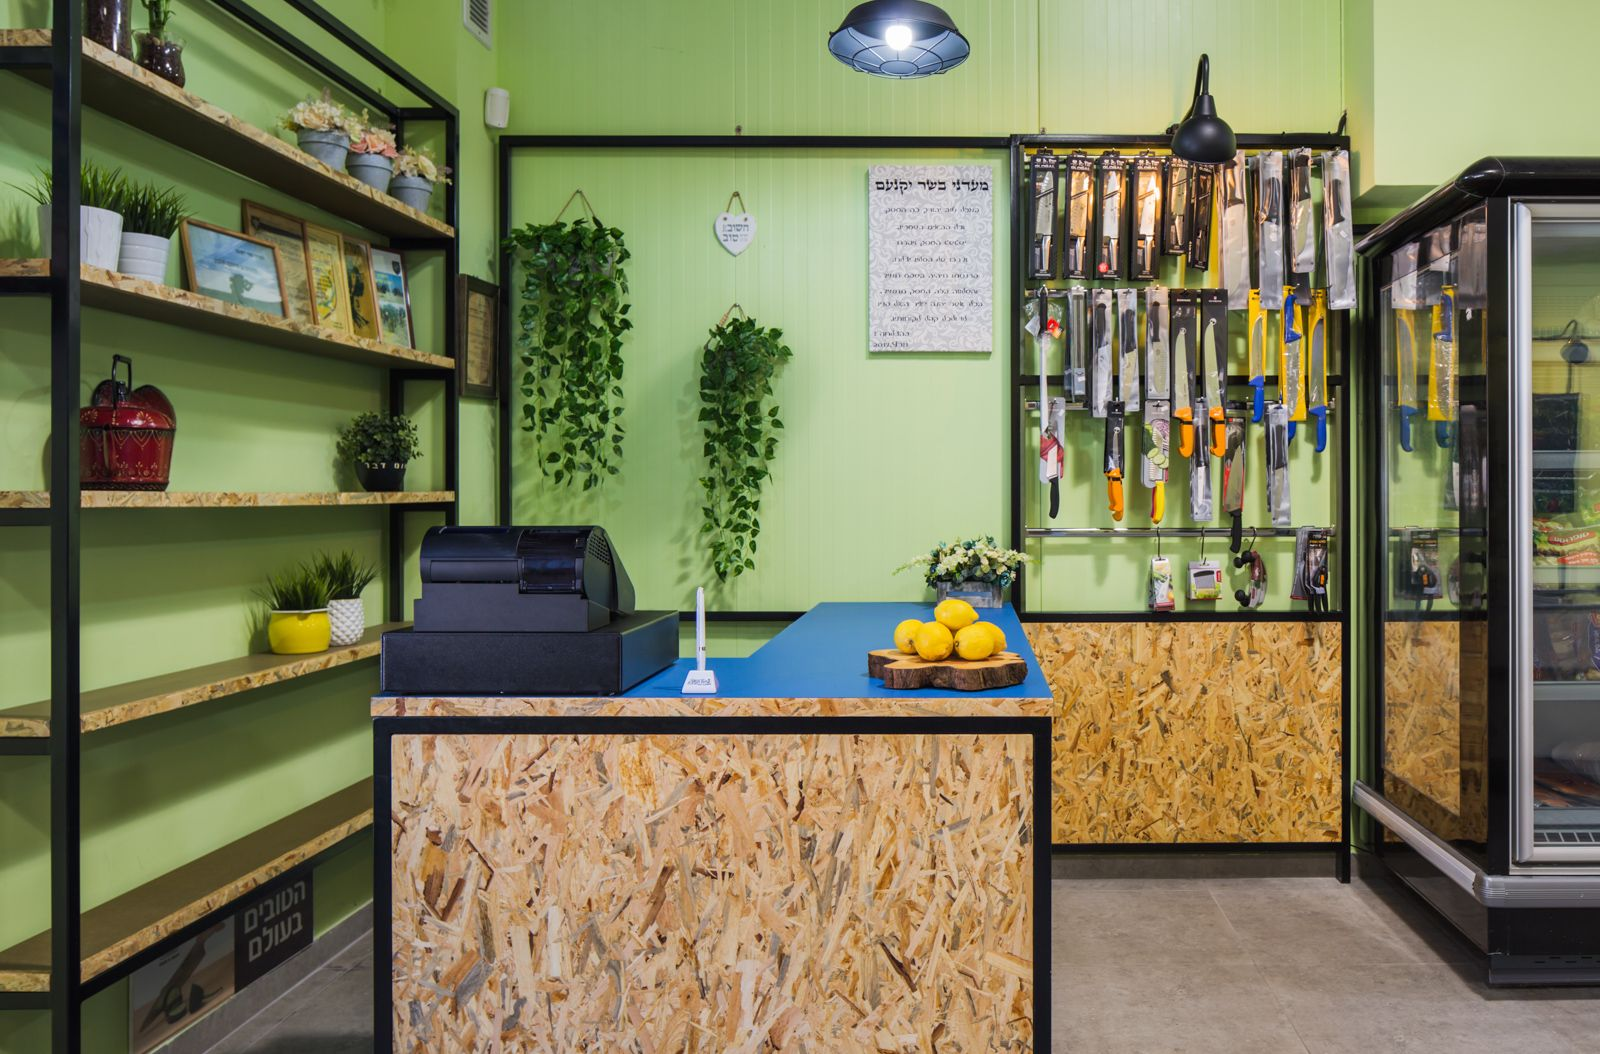 Butcher shop, Iokneam, Israel Design Elina Faerman